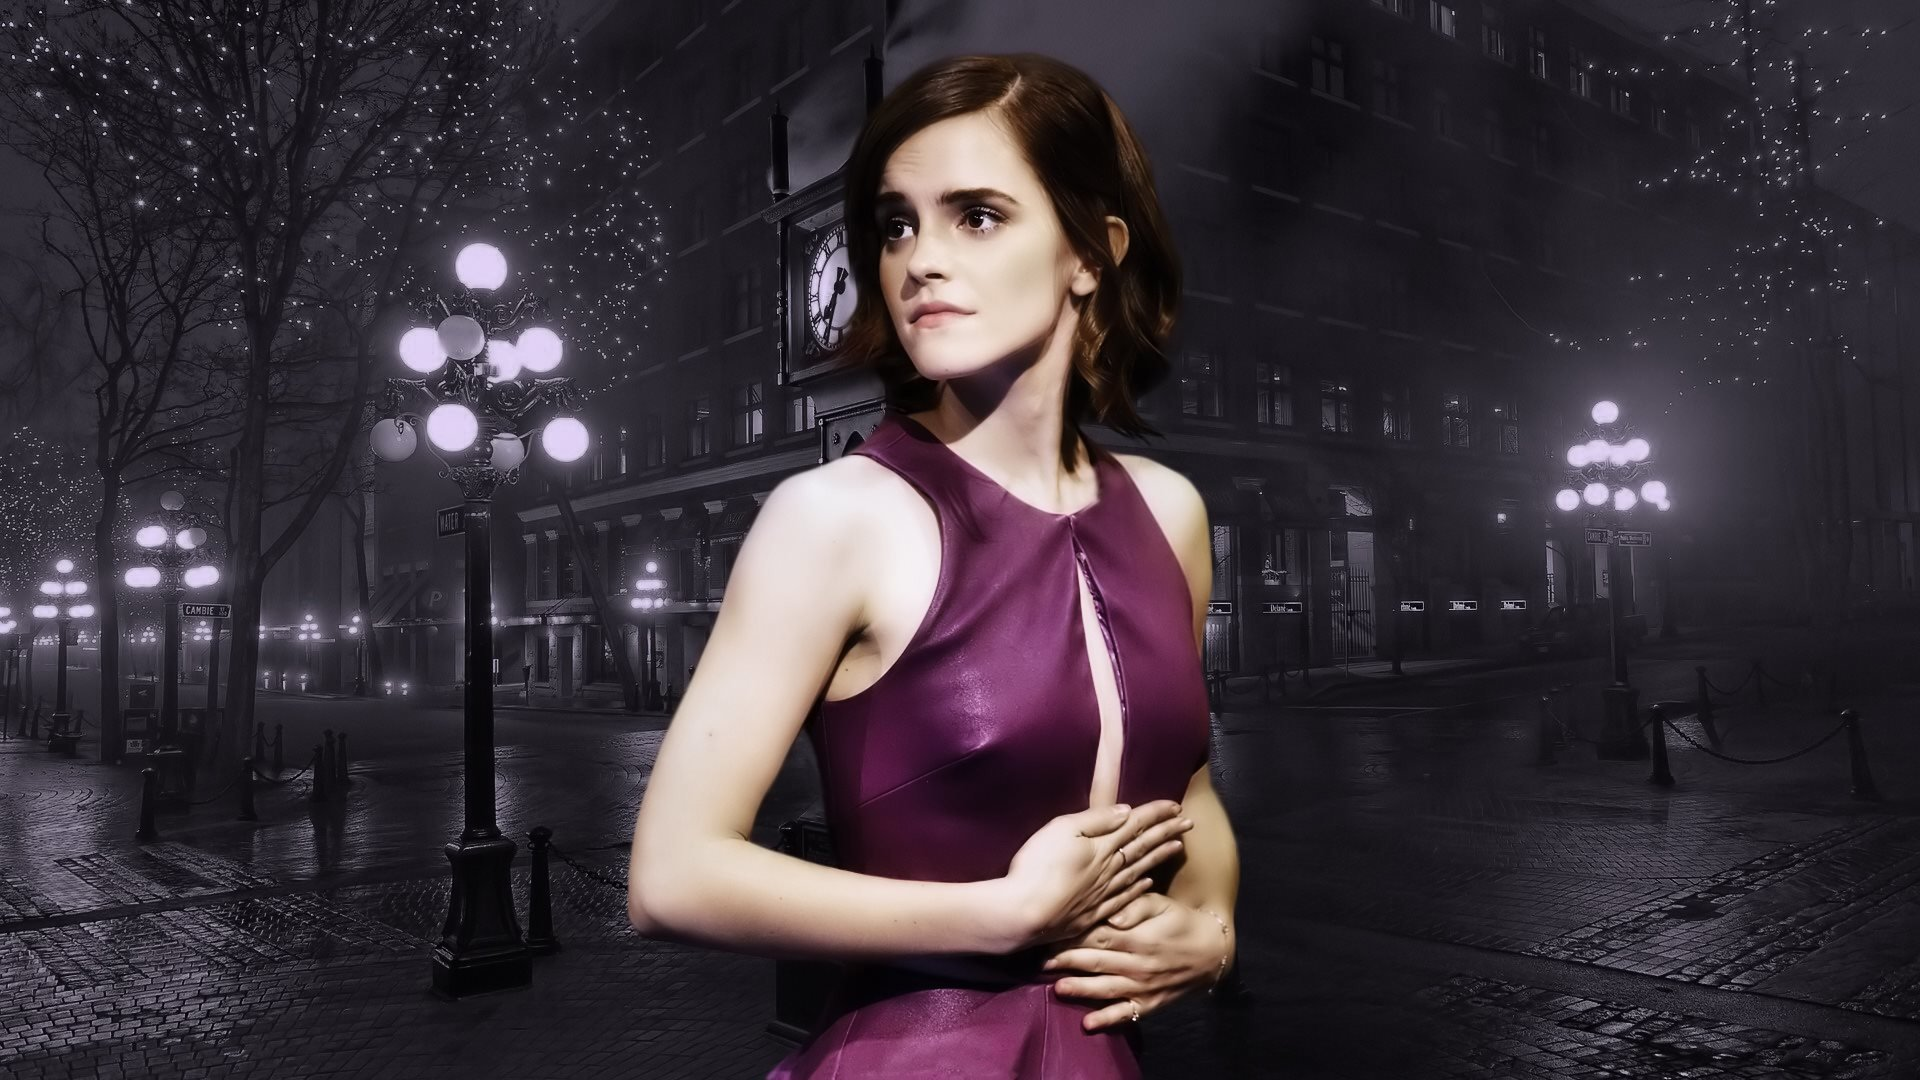 Emma watson hd wallpaper background image 1920x1080 - Emma watson wallpaper free download ...